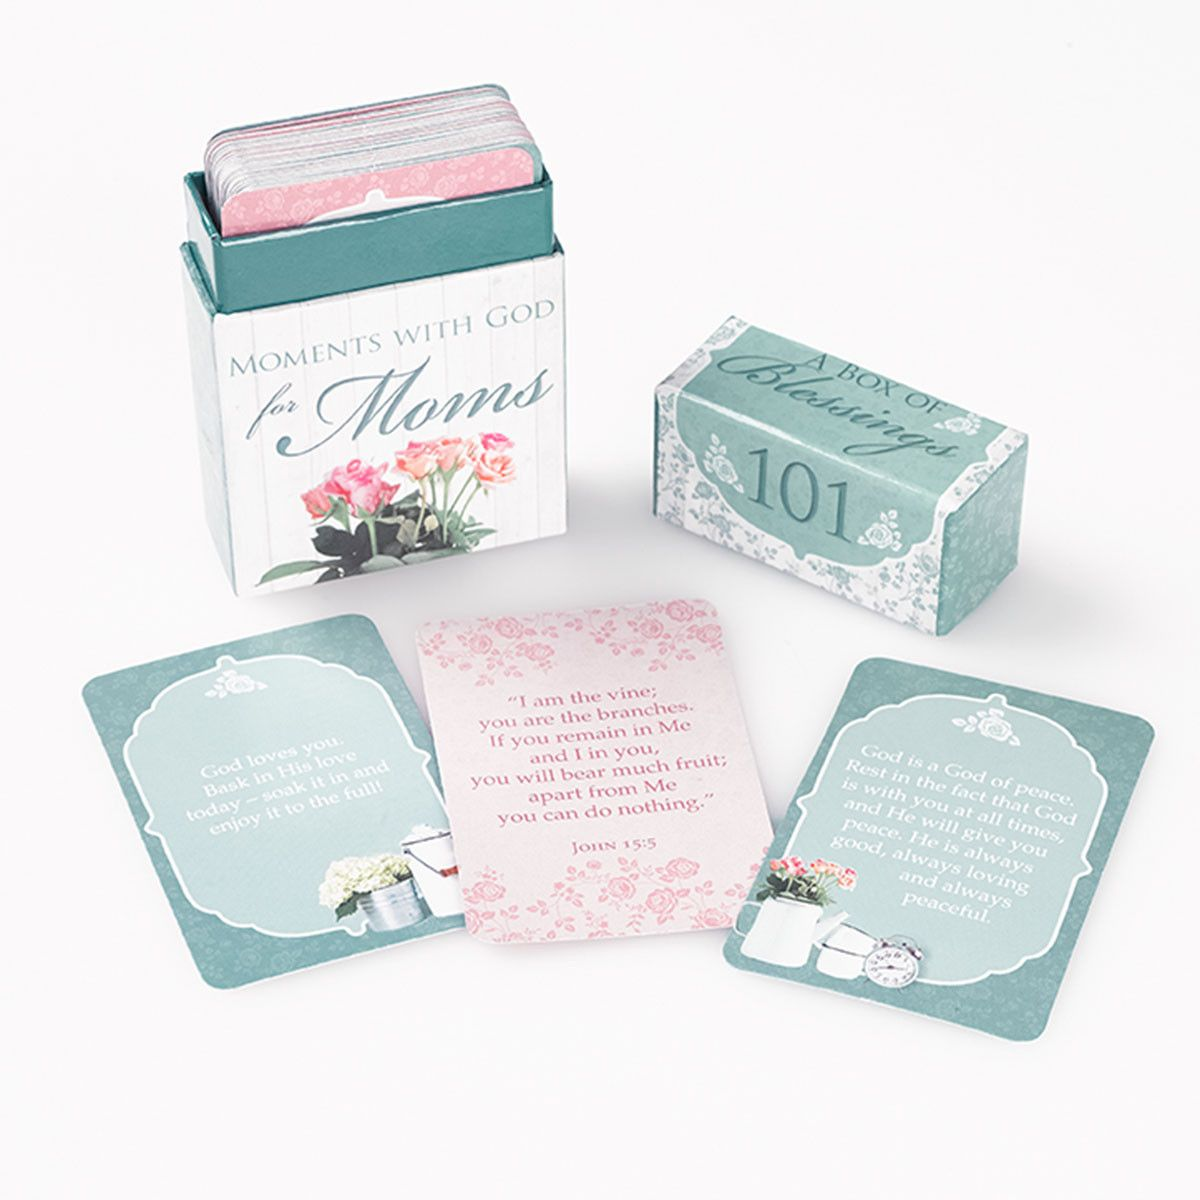 101 Moments with God for Moms - Box of Blessings | Christian Art Gifts - Mother's Day  Gift